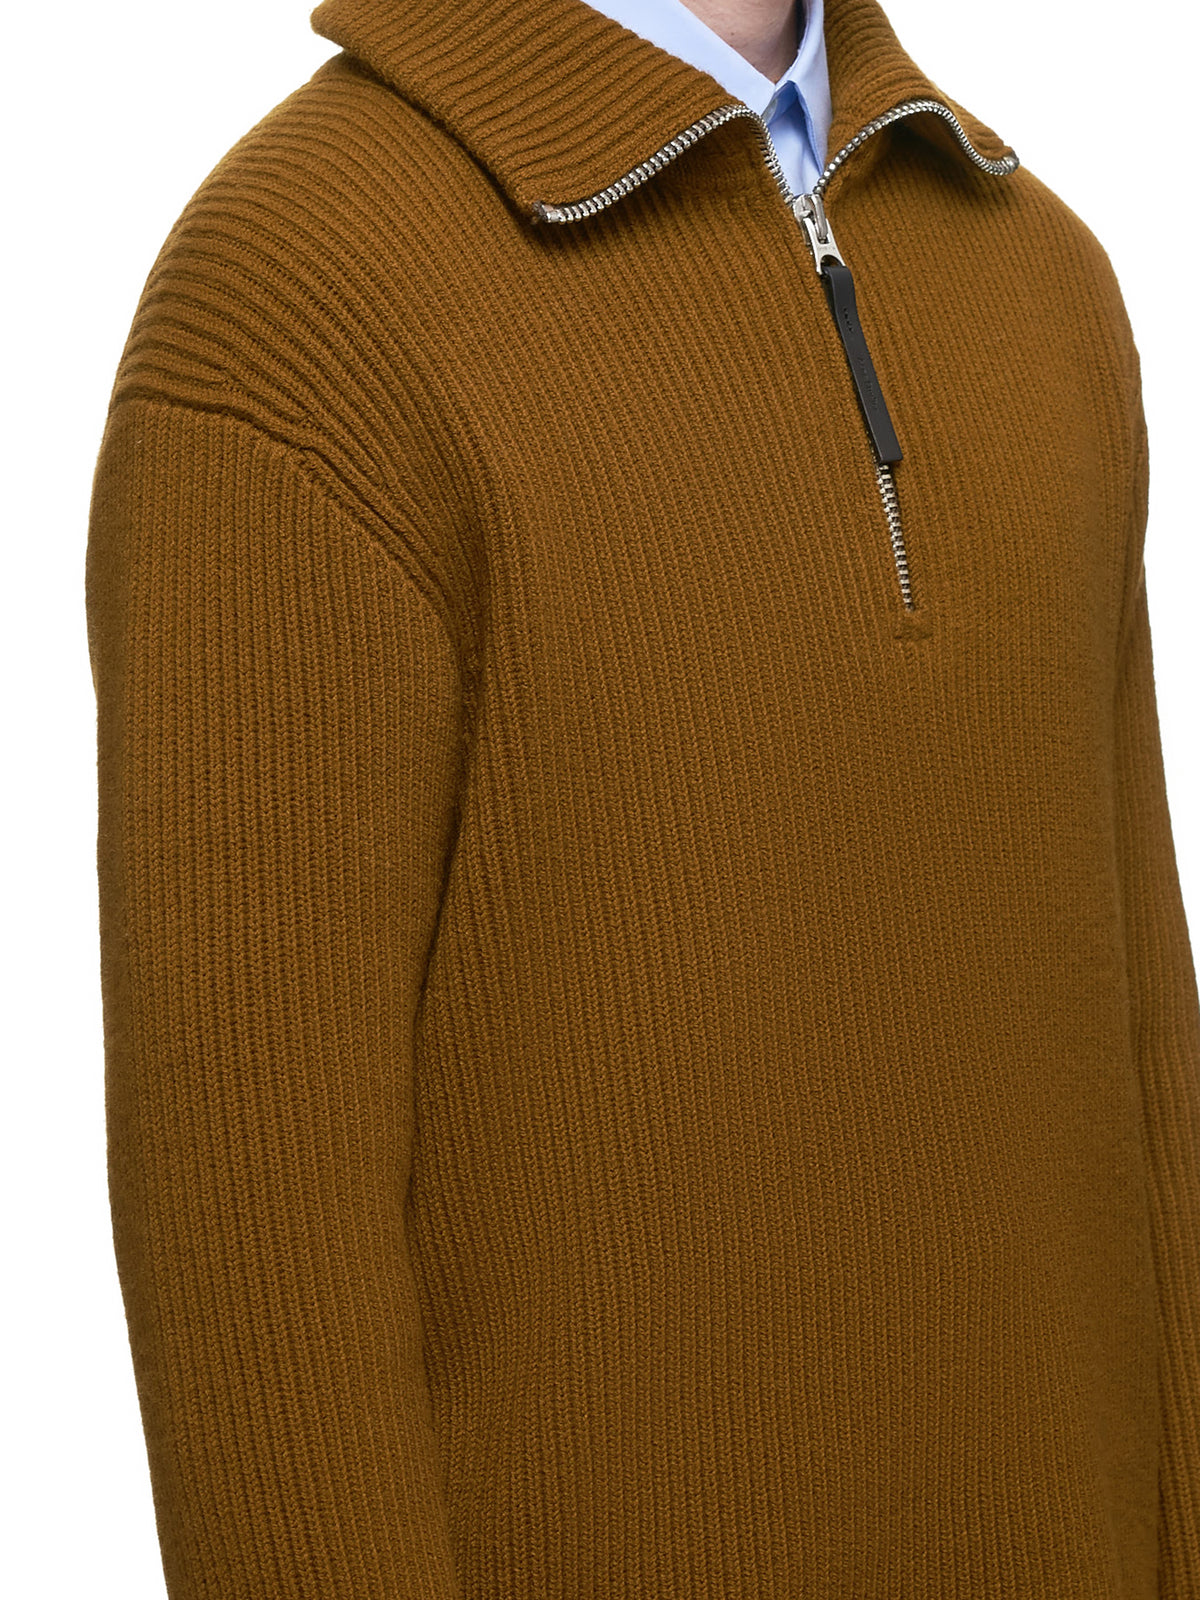 Acne Studios Sweater - Hlorenzo Detail 2